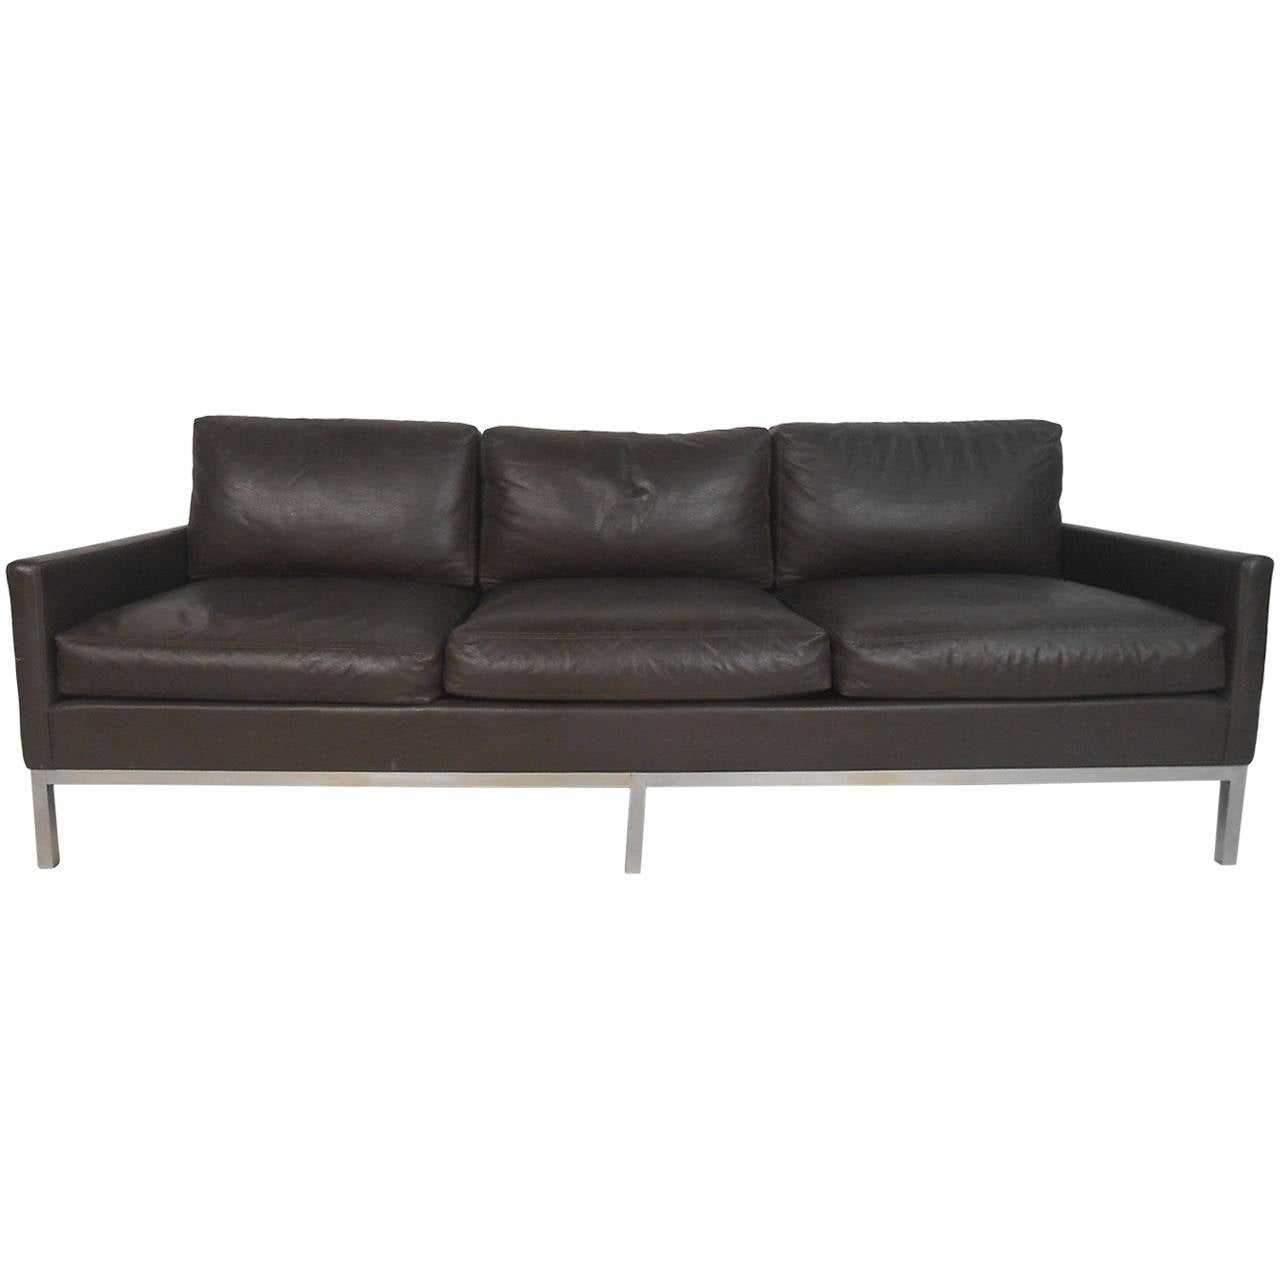 Mid century modern florence knoll style leather sofa for for Florence modern sectional sofa